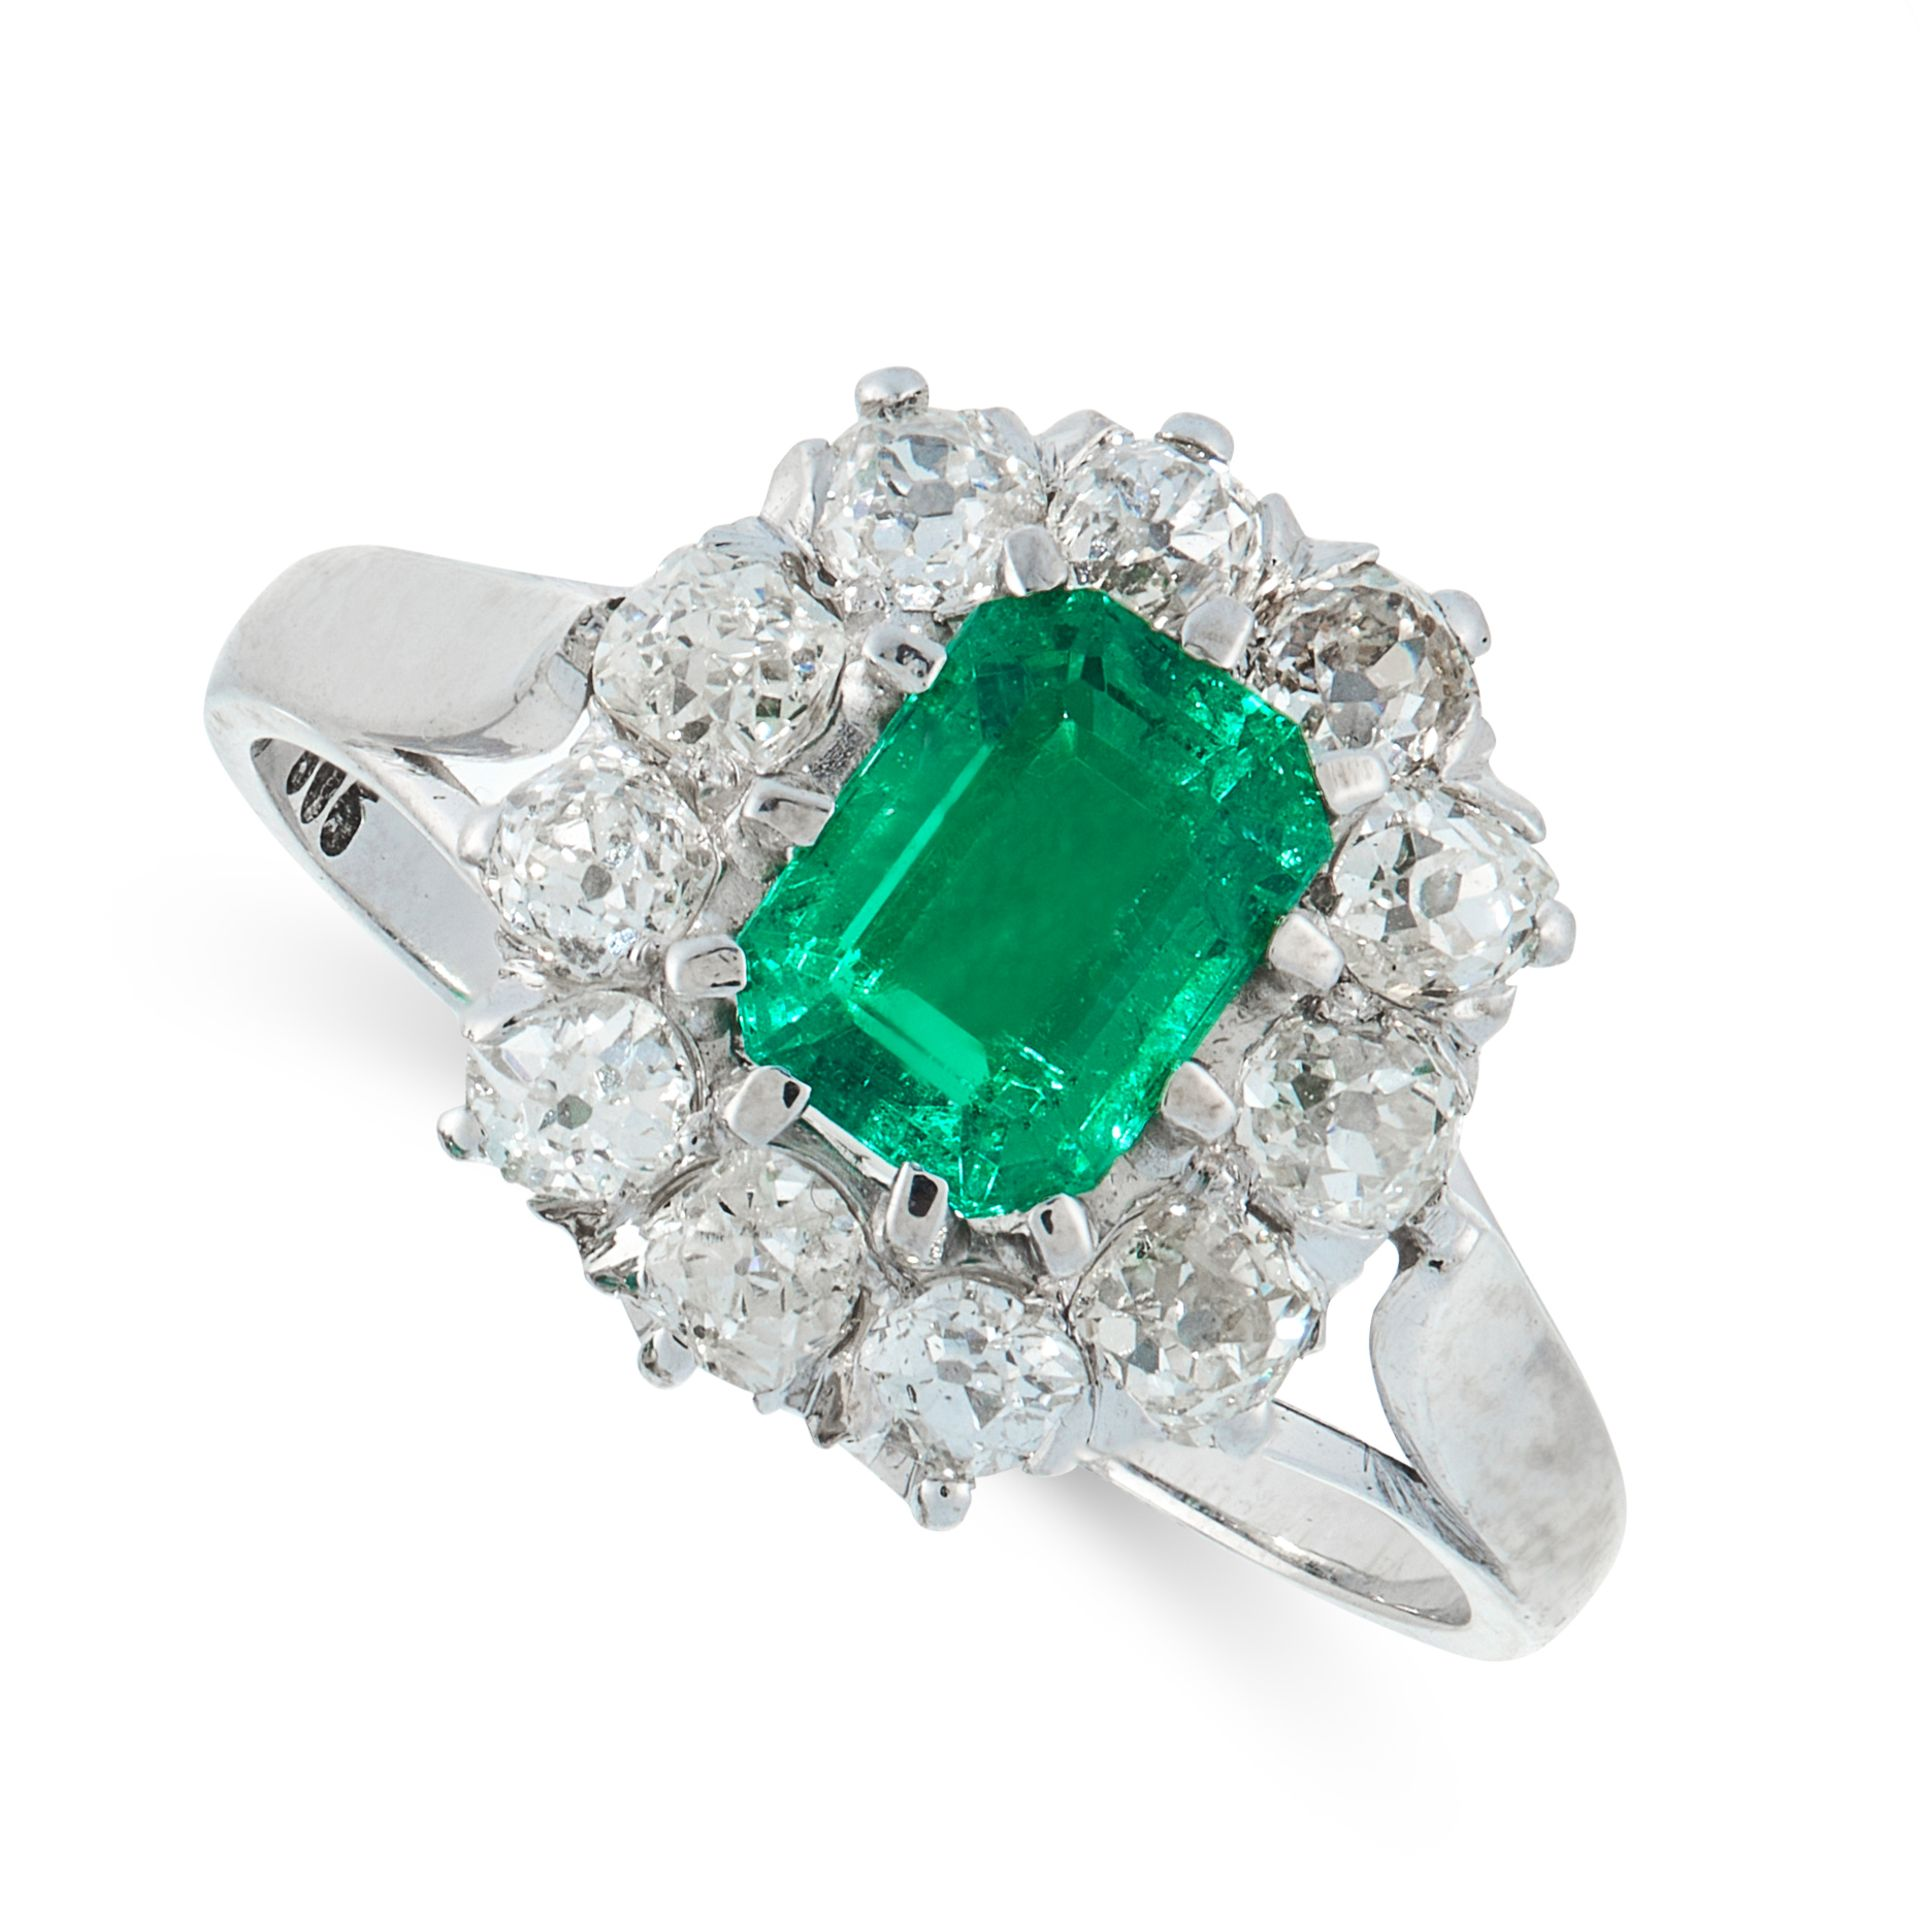 A COLOMBIAN EMERALD AND DIAMOND DRESS RING in 14ct white gold, set with an emerald cut emerald of